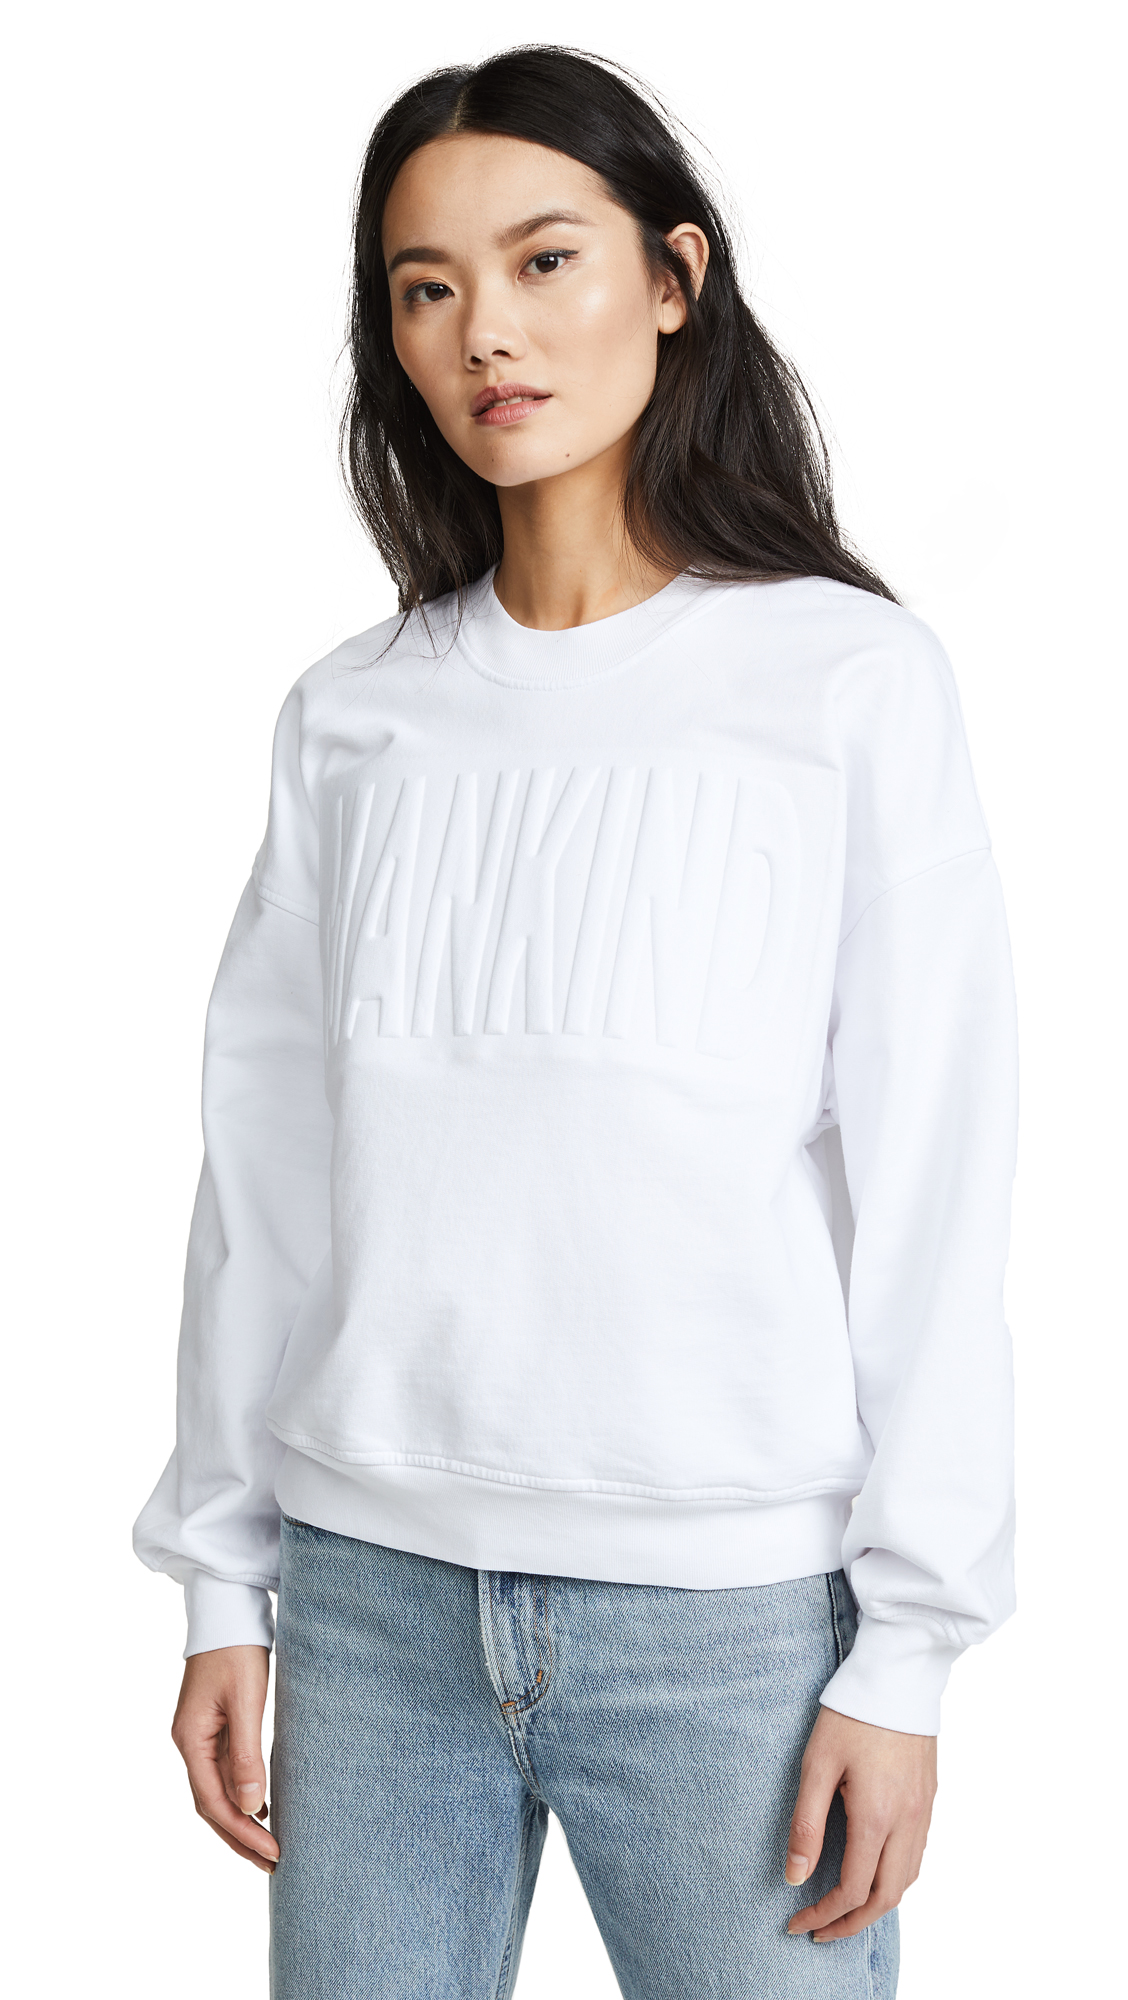 7 For All Mankind MANKIND Embossed Sweatshirt In White/White